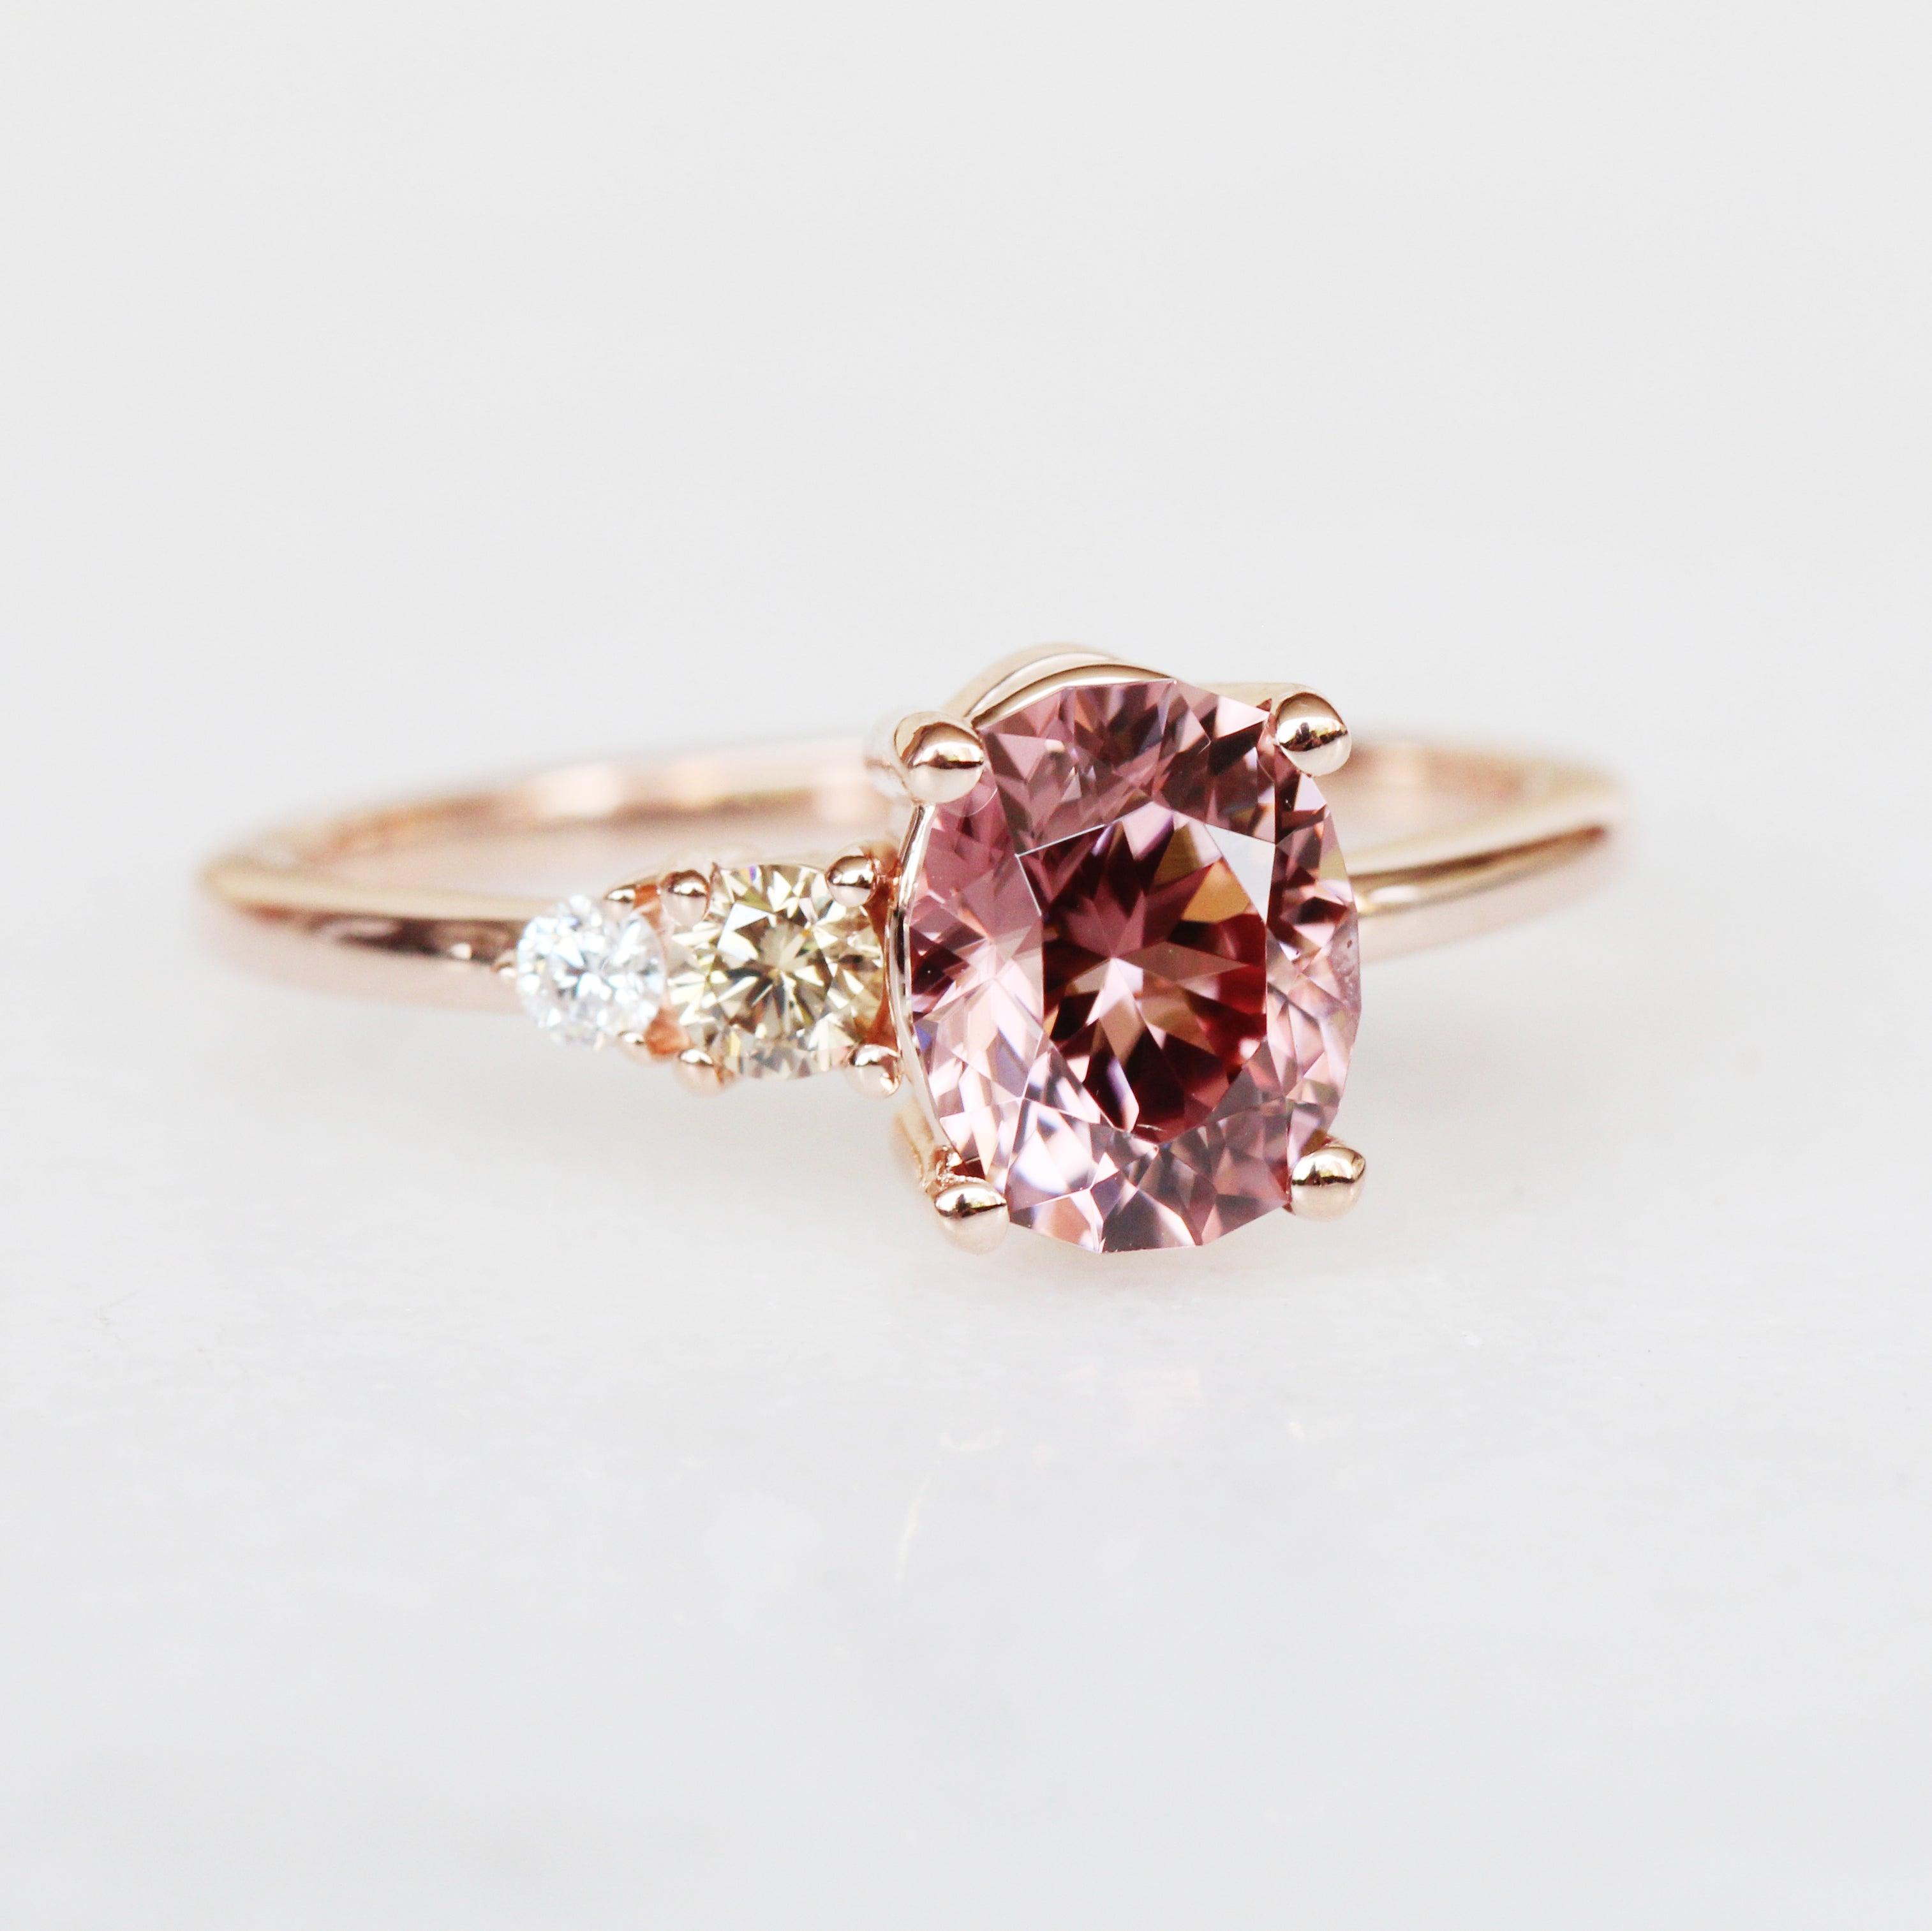 Jesse Ring with 2.04 ct Zircon and Diamonds in 10k rose gold - ready to size and ship - Salt & Pepper Celestial Diamond Engagement Rings and Wedding Bands  by Midwinter Co.